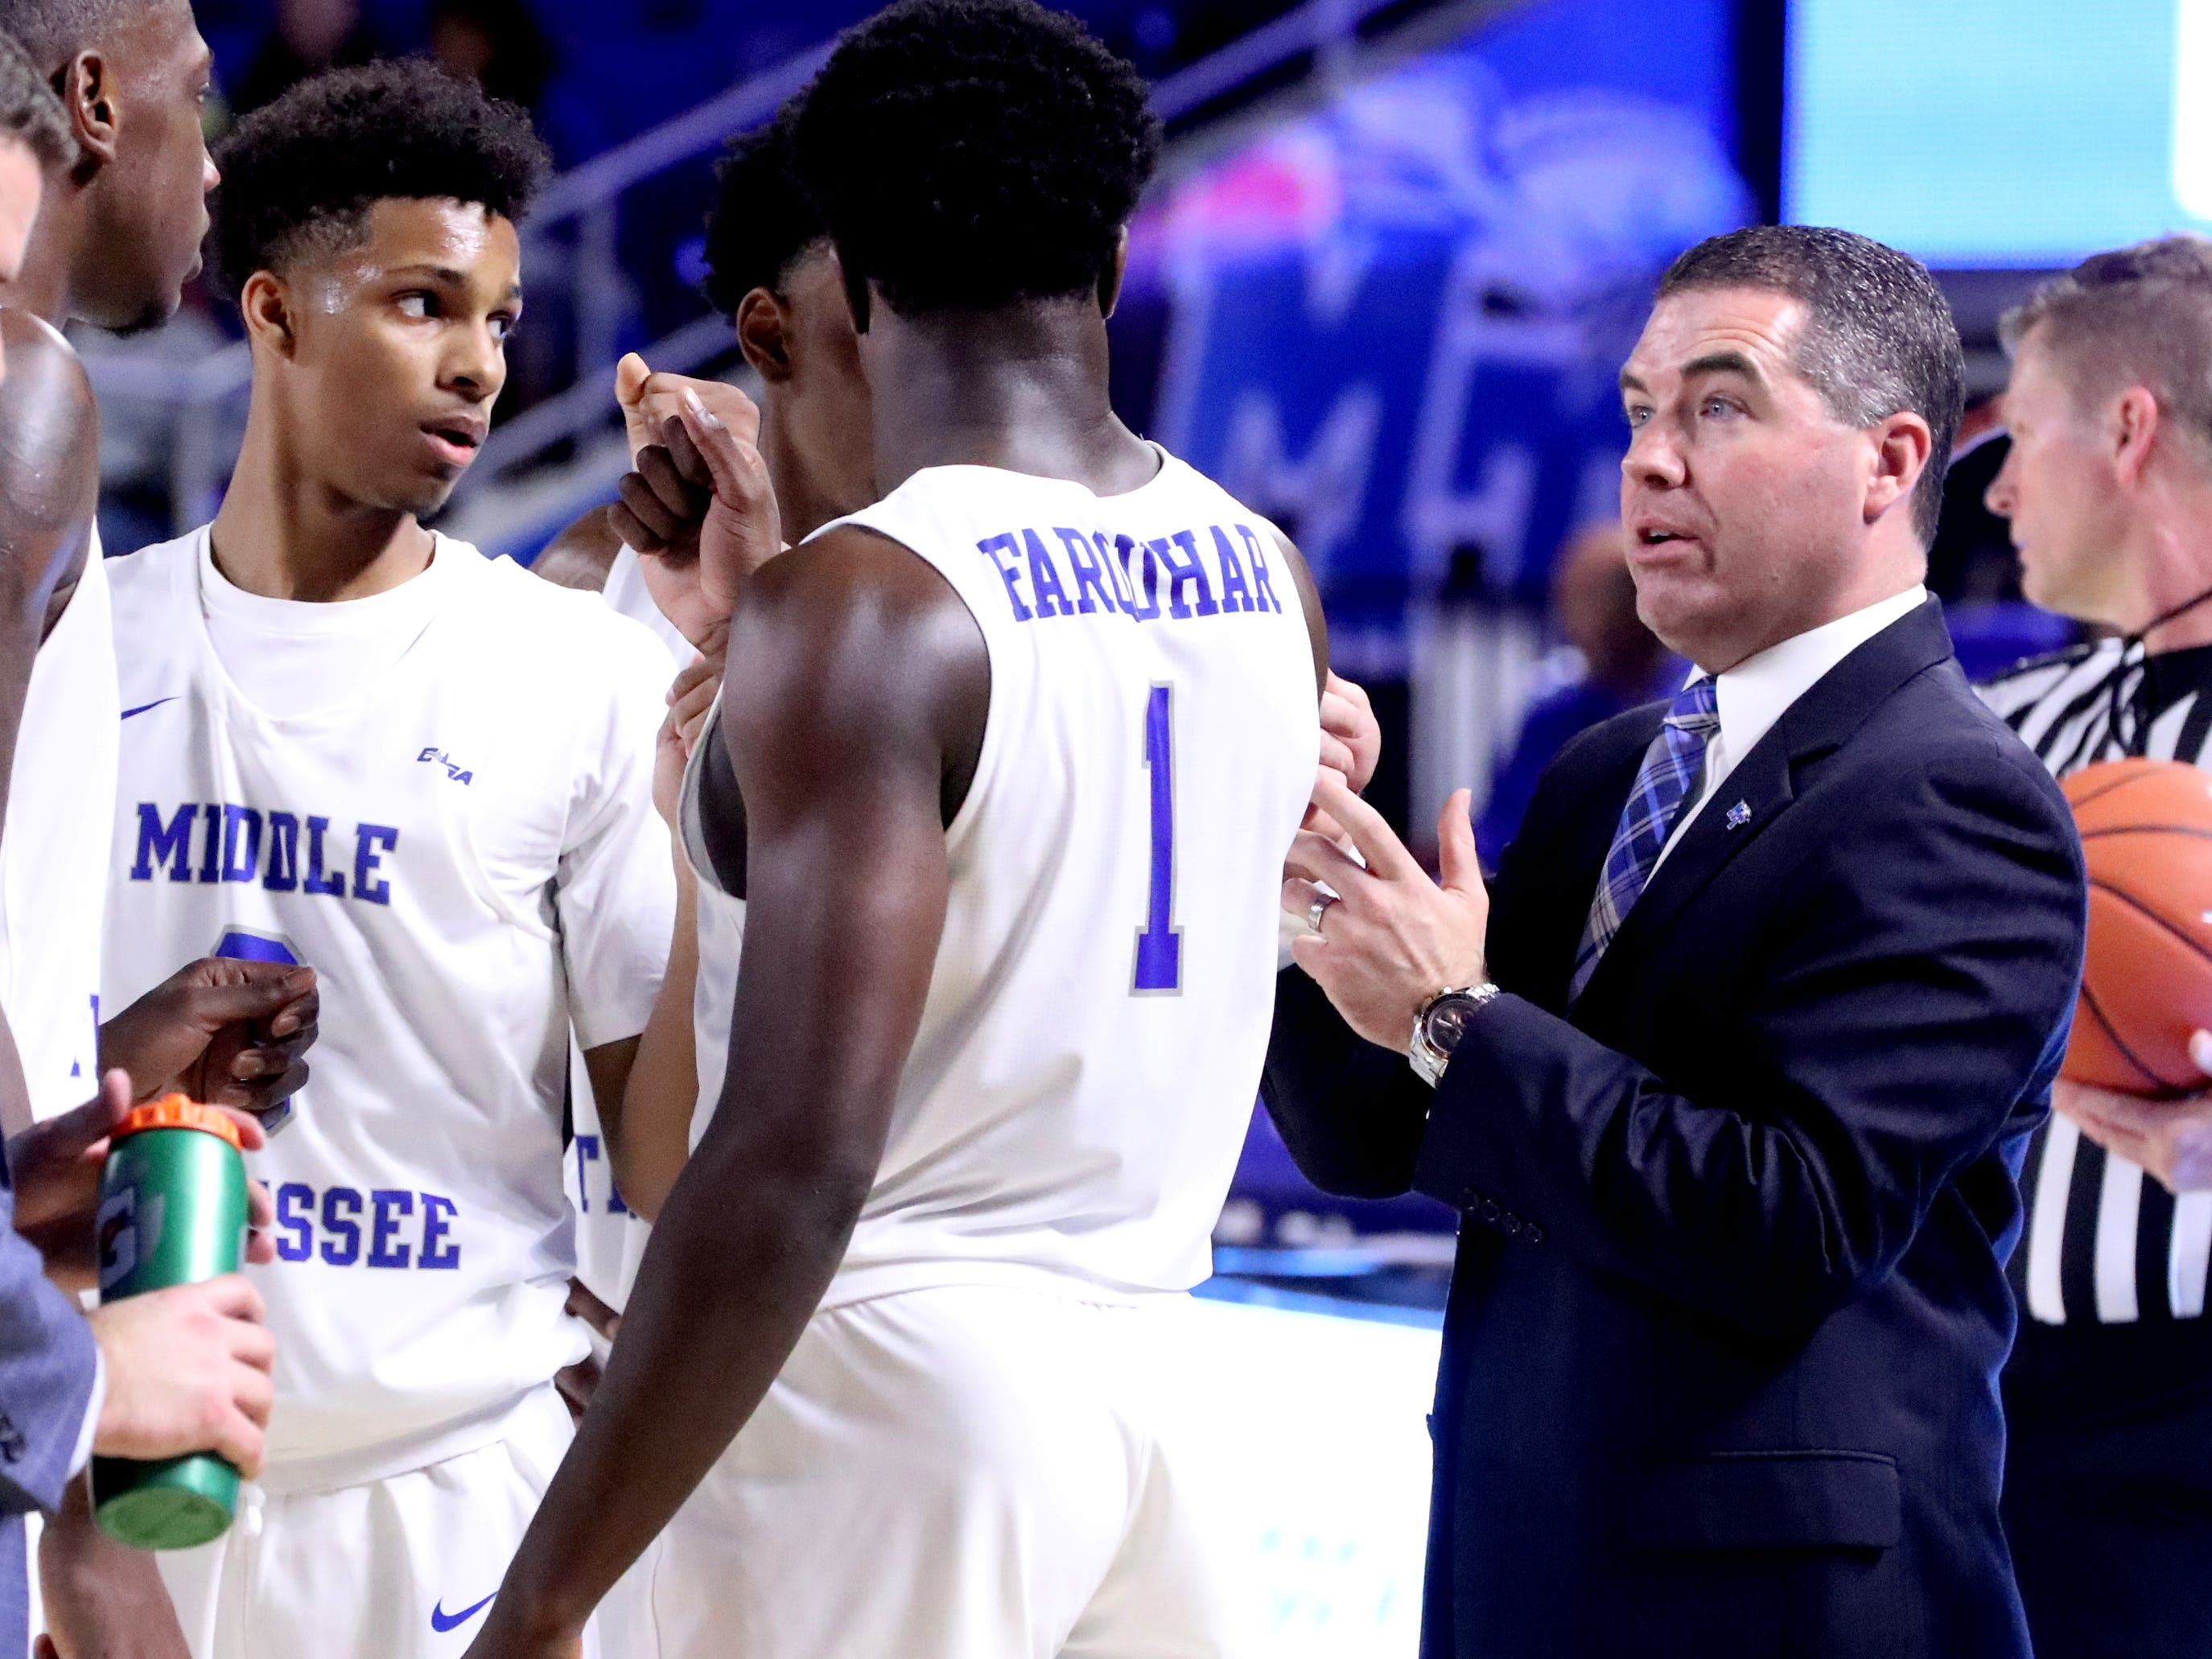 MTSU's head coach Nick McDevitt  talks with players during a break in the game against Lees-McRae on Tuesday, Nov. 6, 2018.